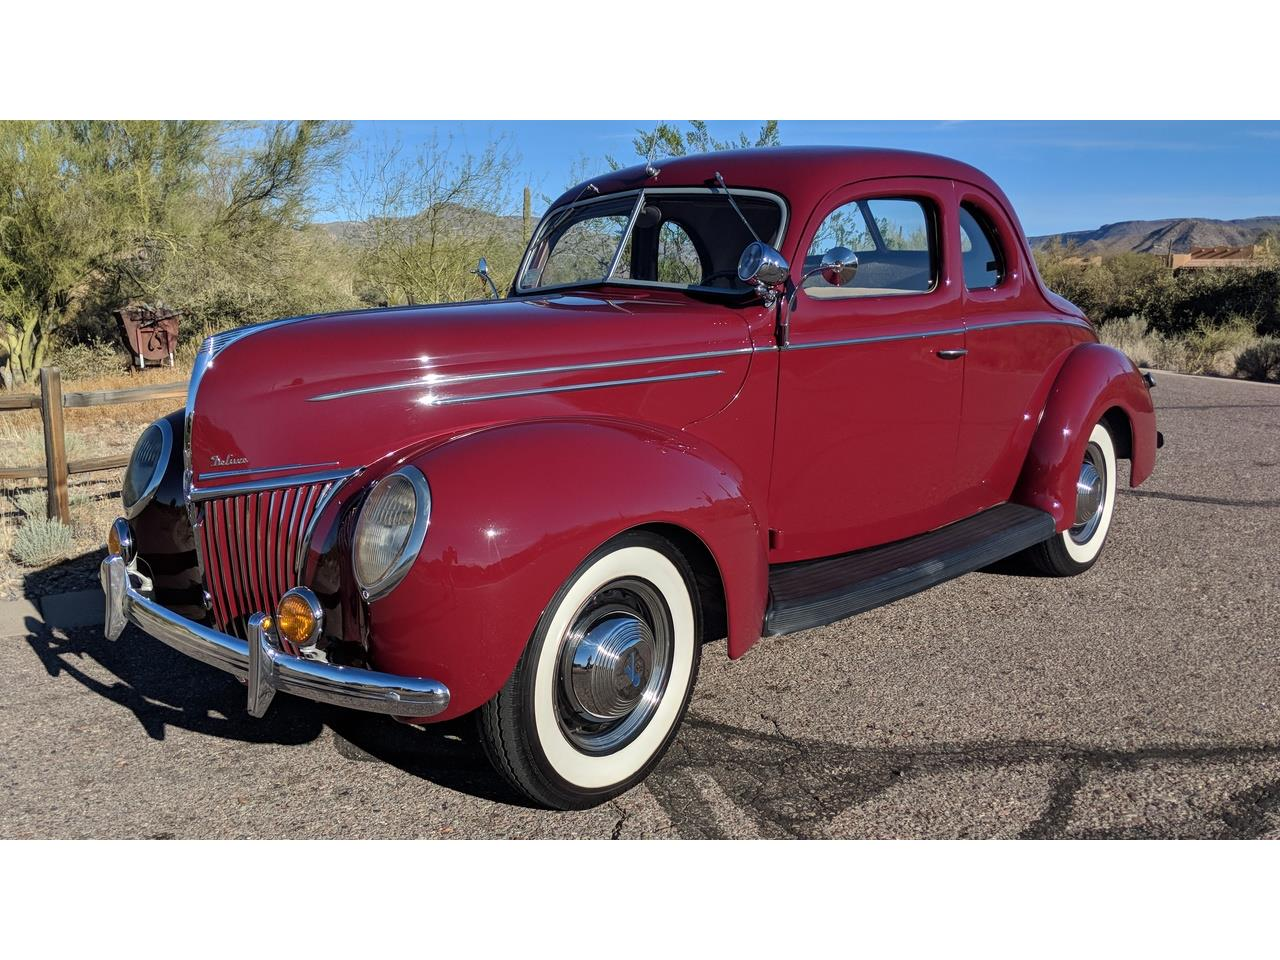 Large Picture of 1939 Ford Deluxe located in Cave Creek Arizona - $49,500.00 Offered by a Private Seller - NQG9